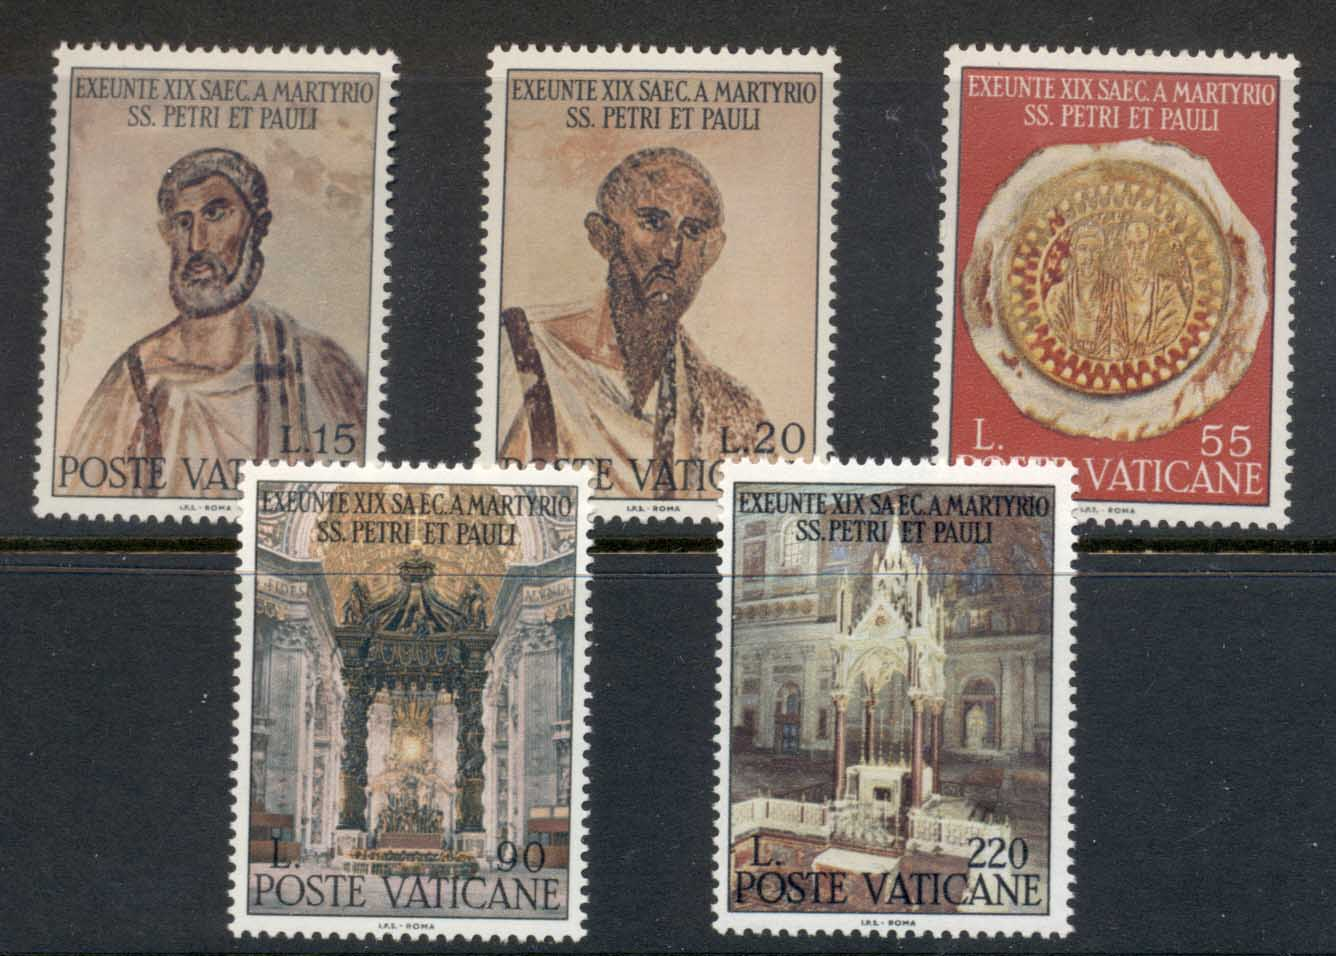 Vatican 1967 Martyrdom of the Apostles Peter and Paul MLH